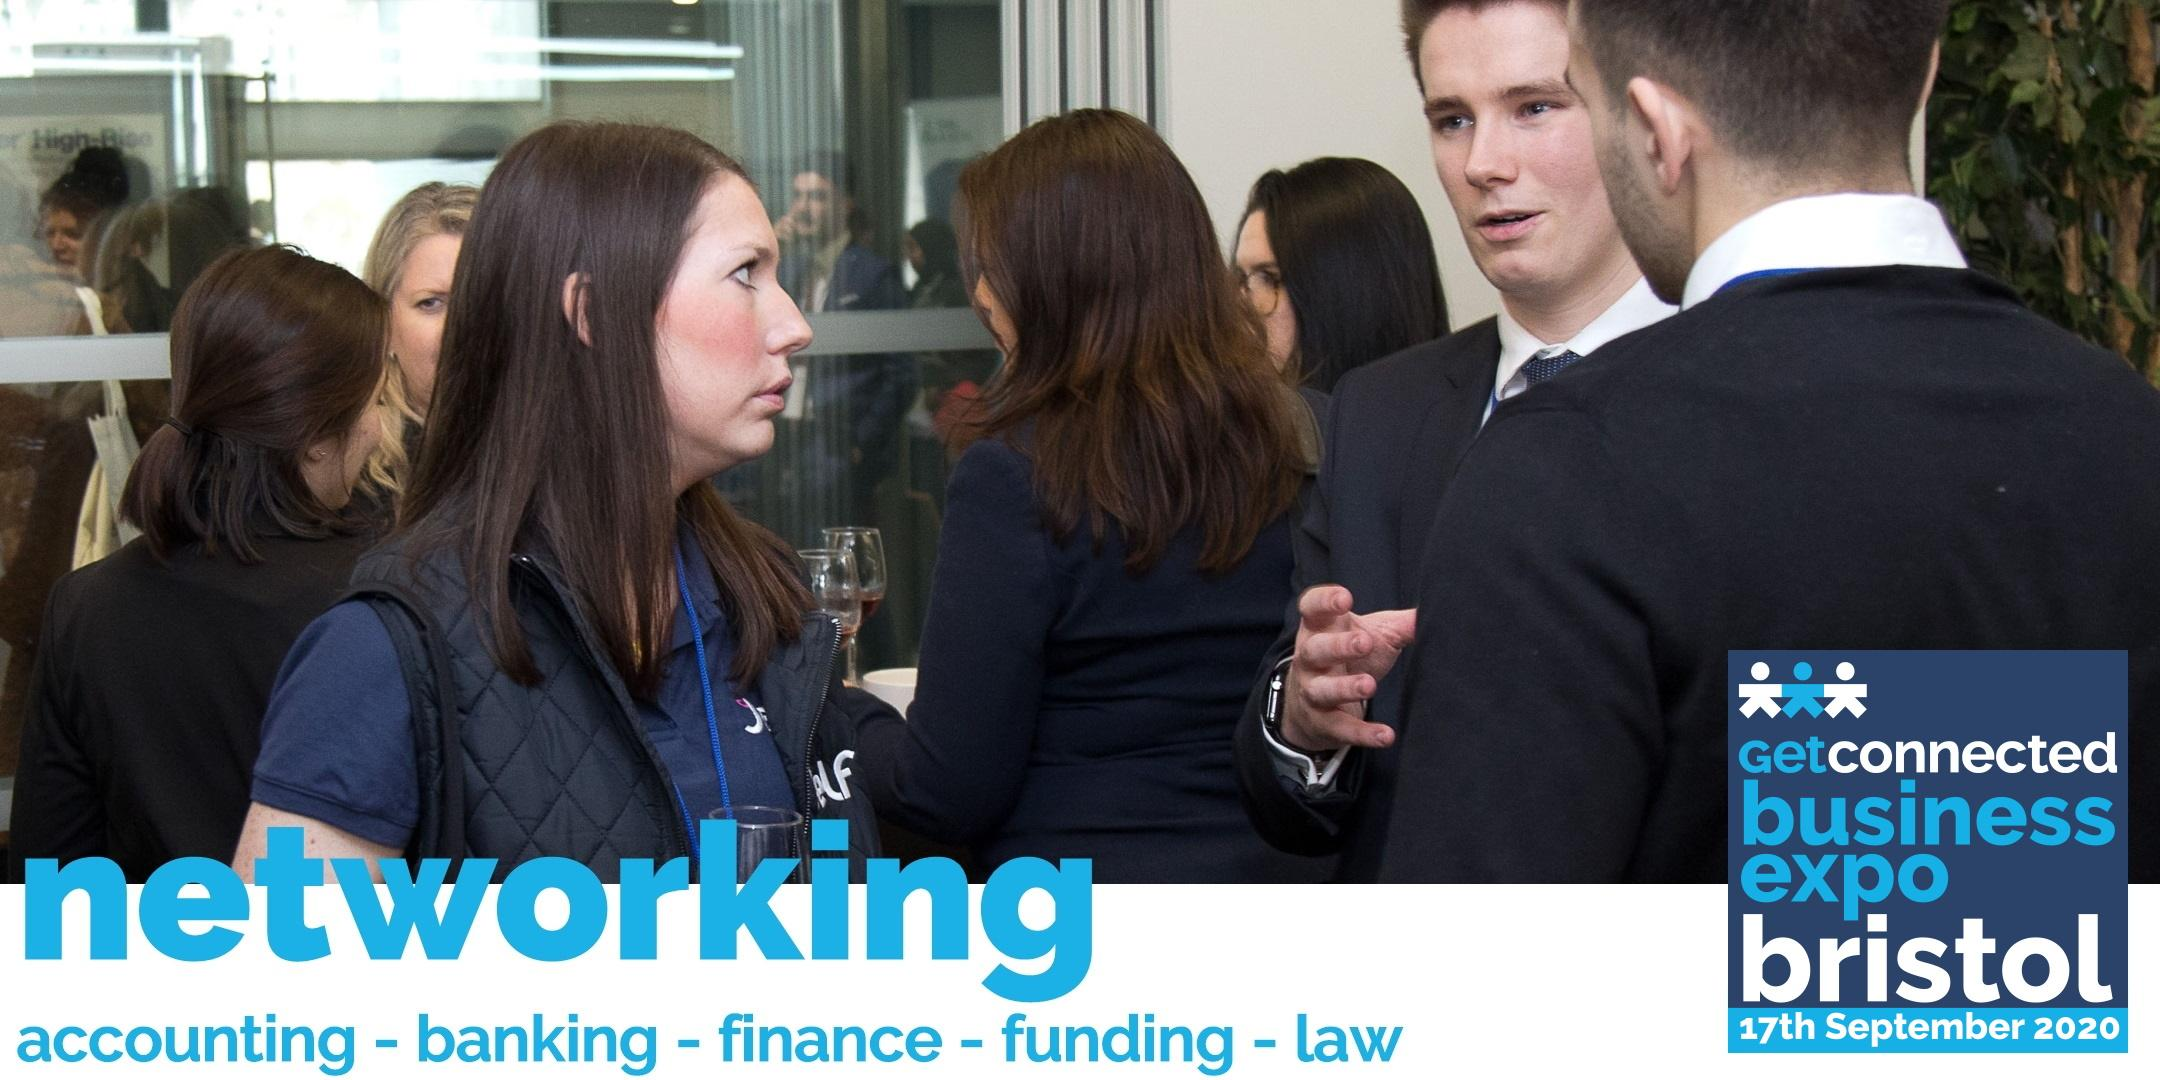 Networking for Accounting, Banking, Finance & Law